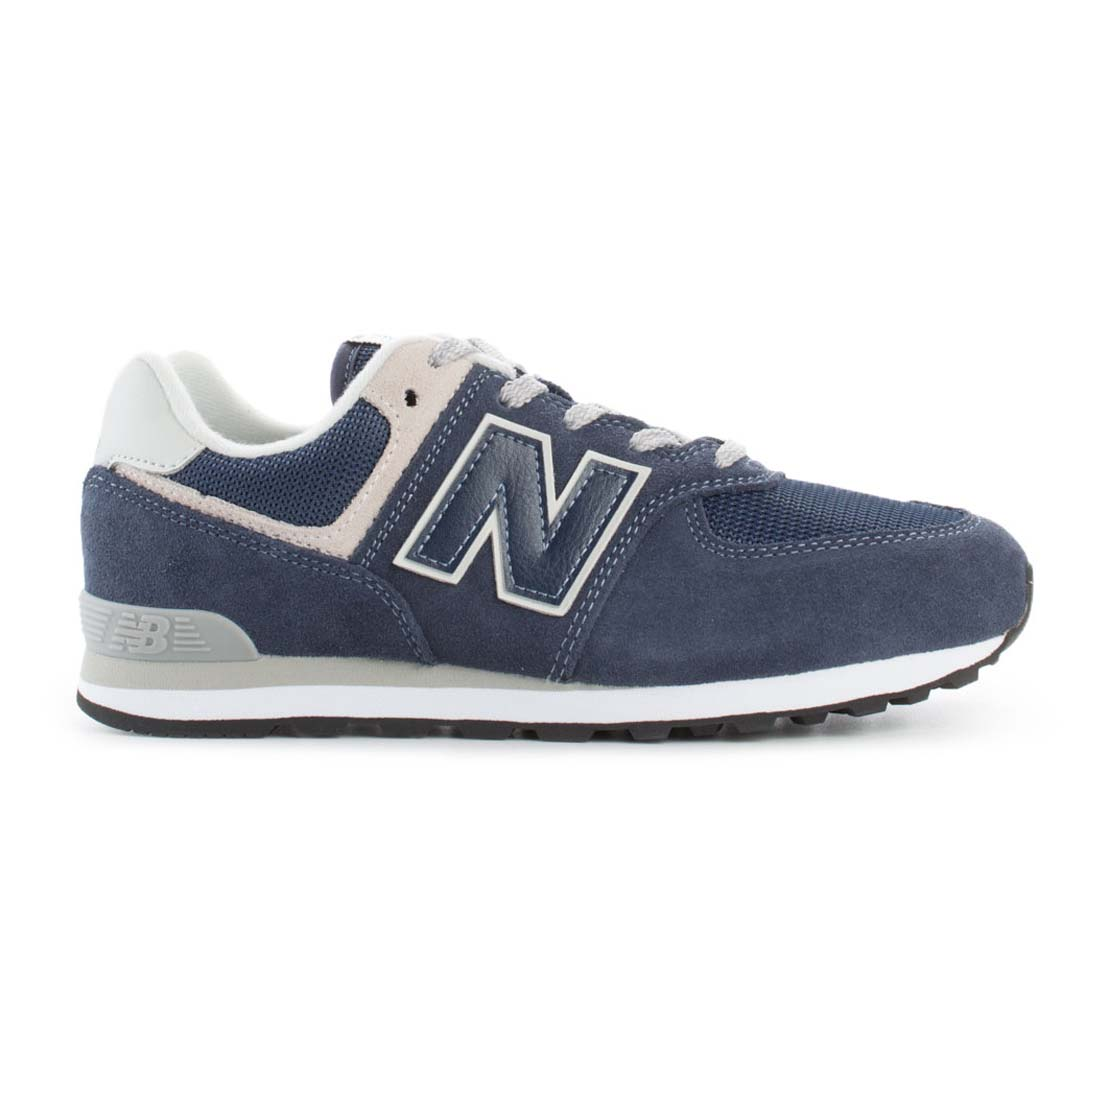 New Balance 574 Core GS ( GC574GV ) παπούτσια    παιδί    σχολικά  size 35 5 40    casual